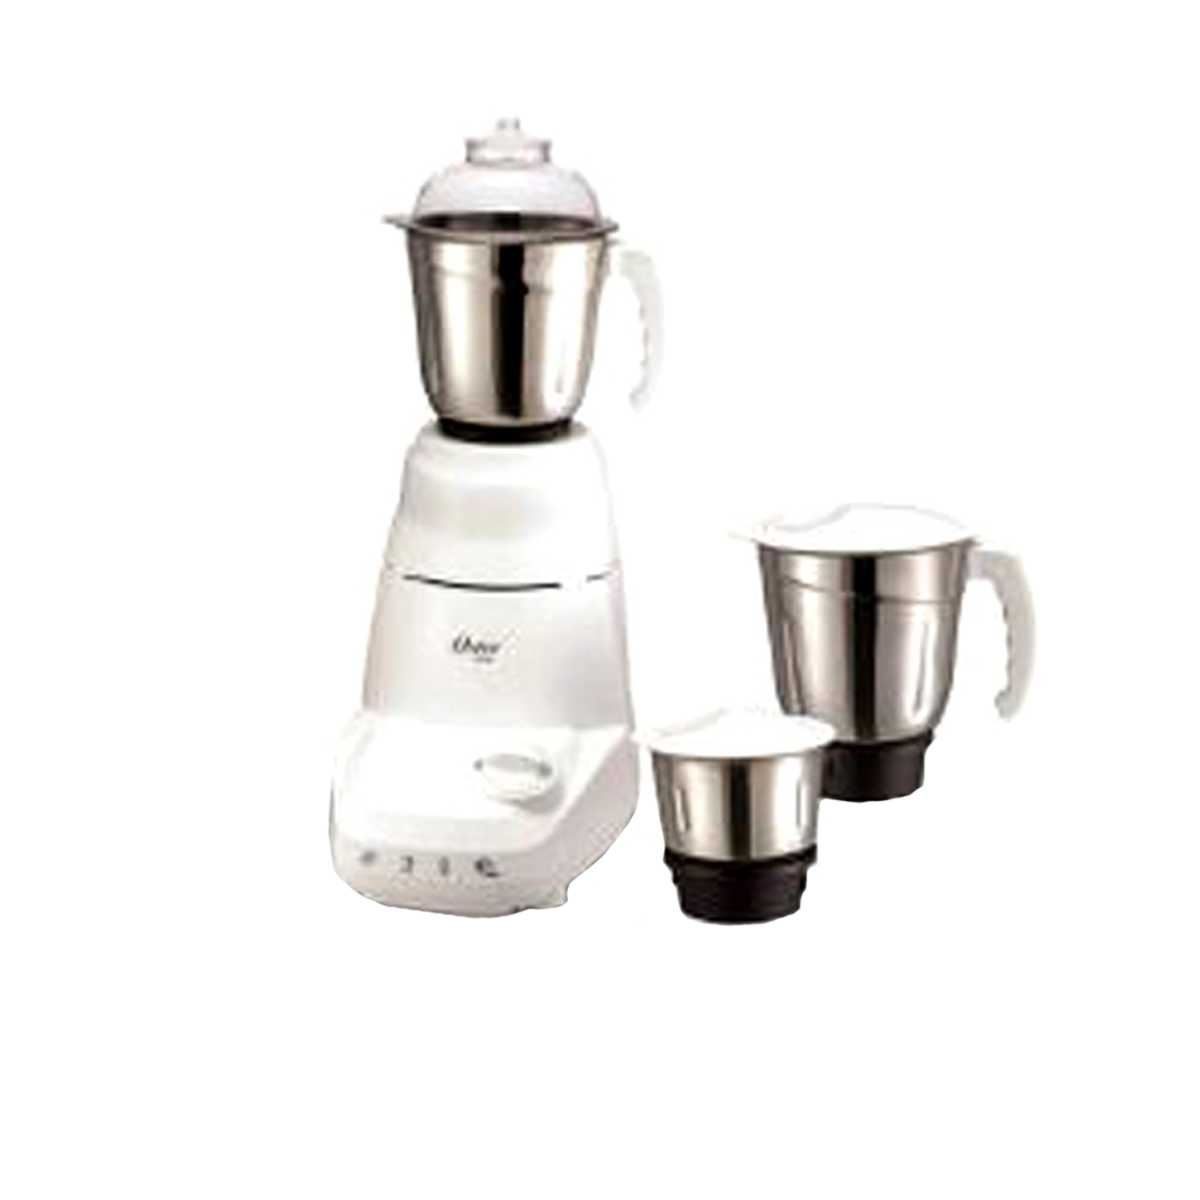 Picture of Oster Mixer Grinder MGSTSL 6010- 449